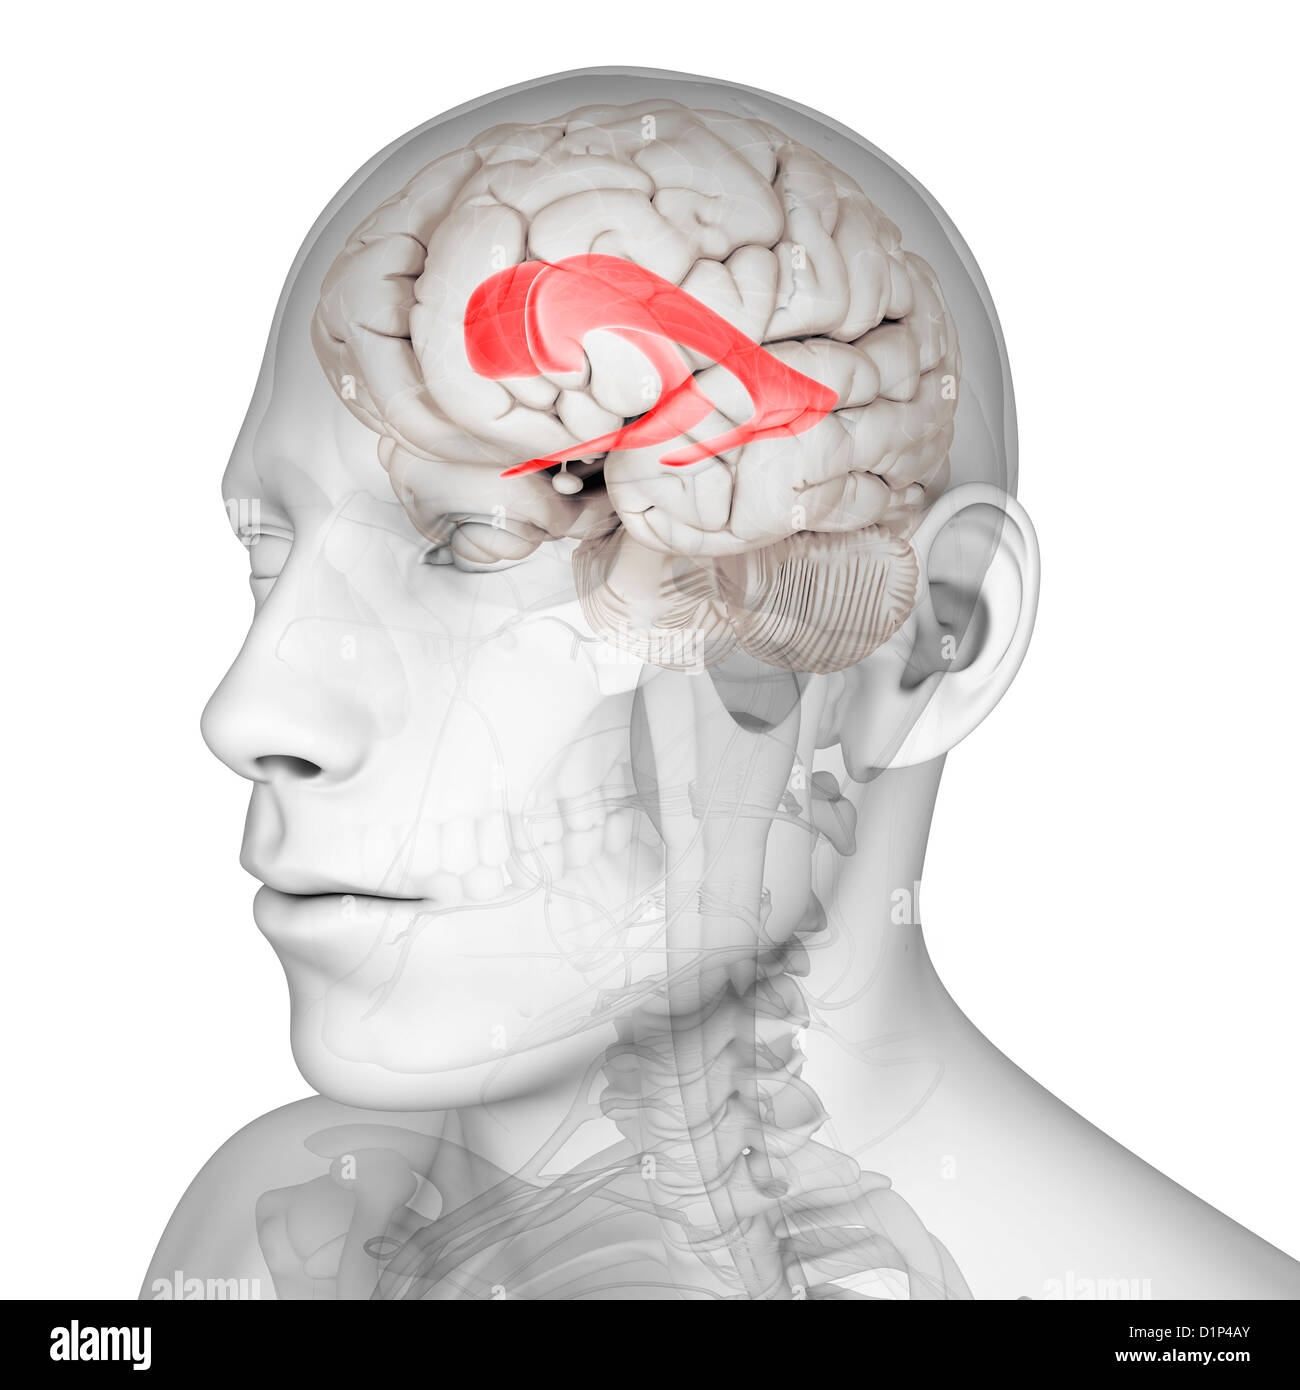 Lateral ventricle, artwork - Stock Image